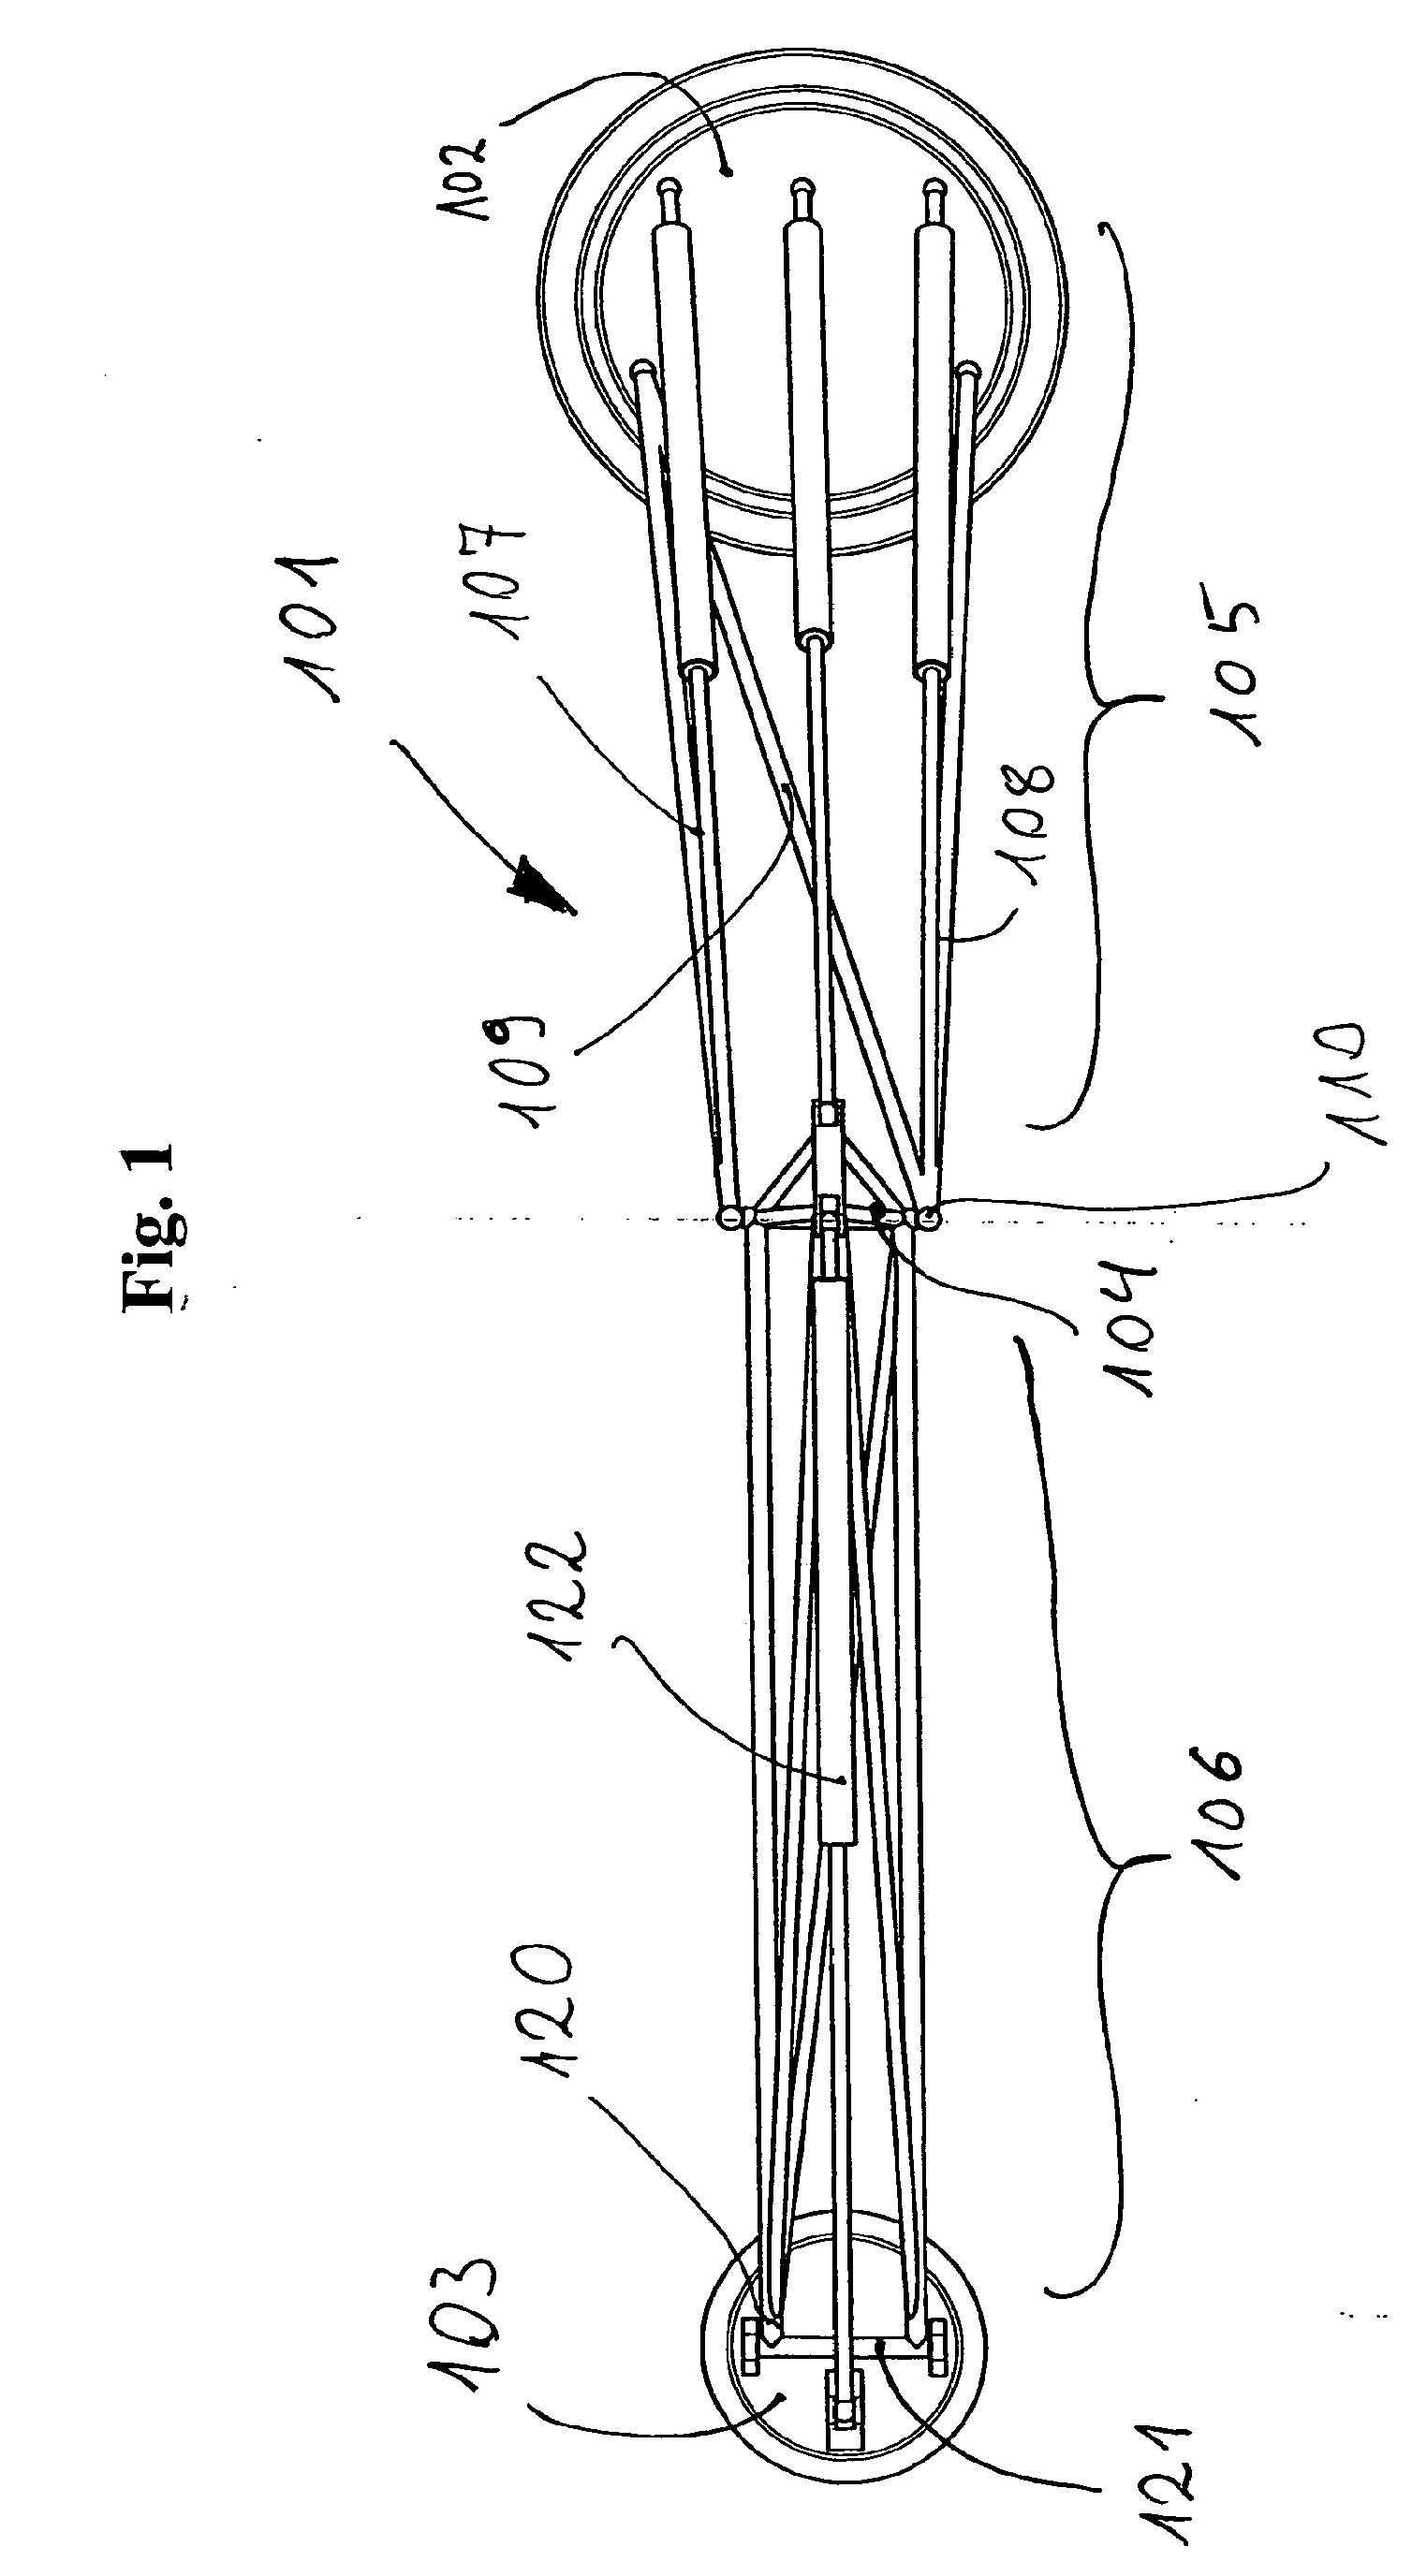 Articulated Arm Lifting Devices : Patent ep a articulated arm for robots lifting